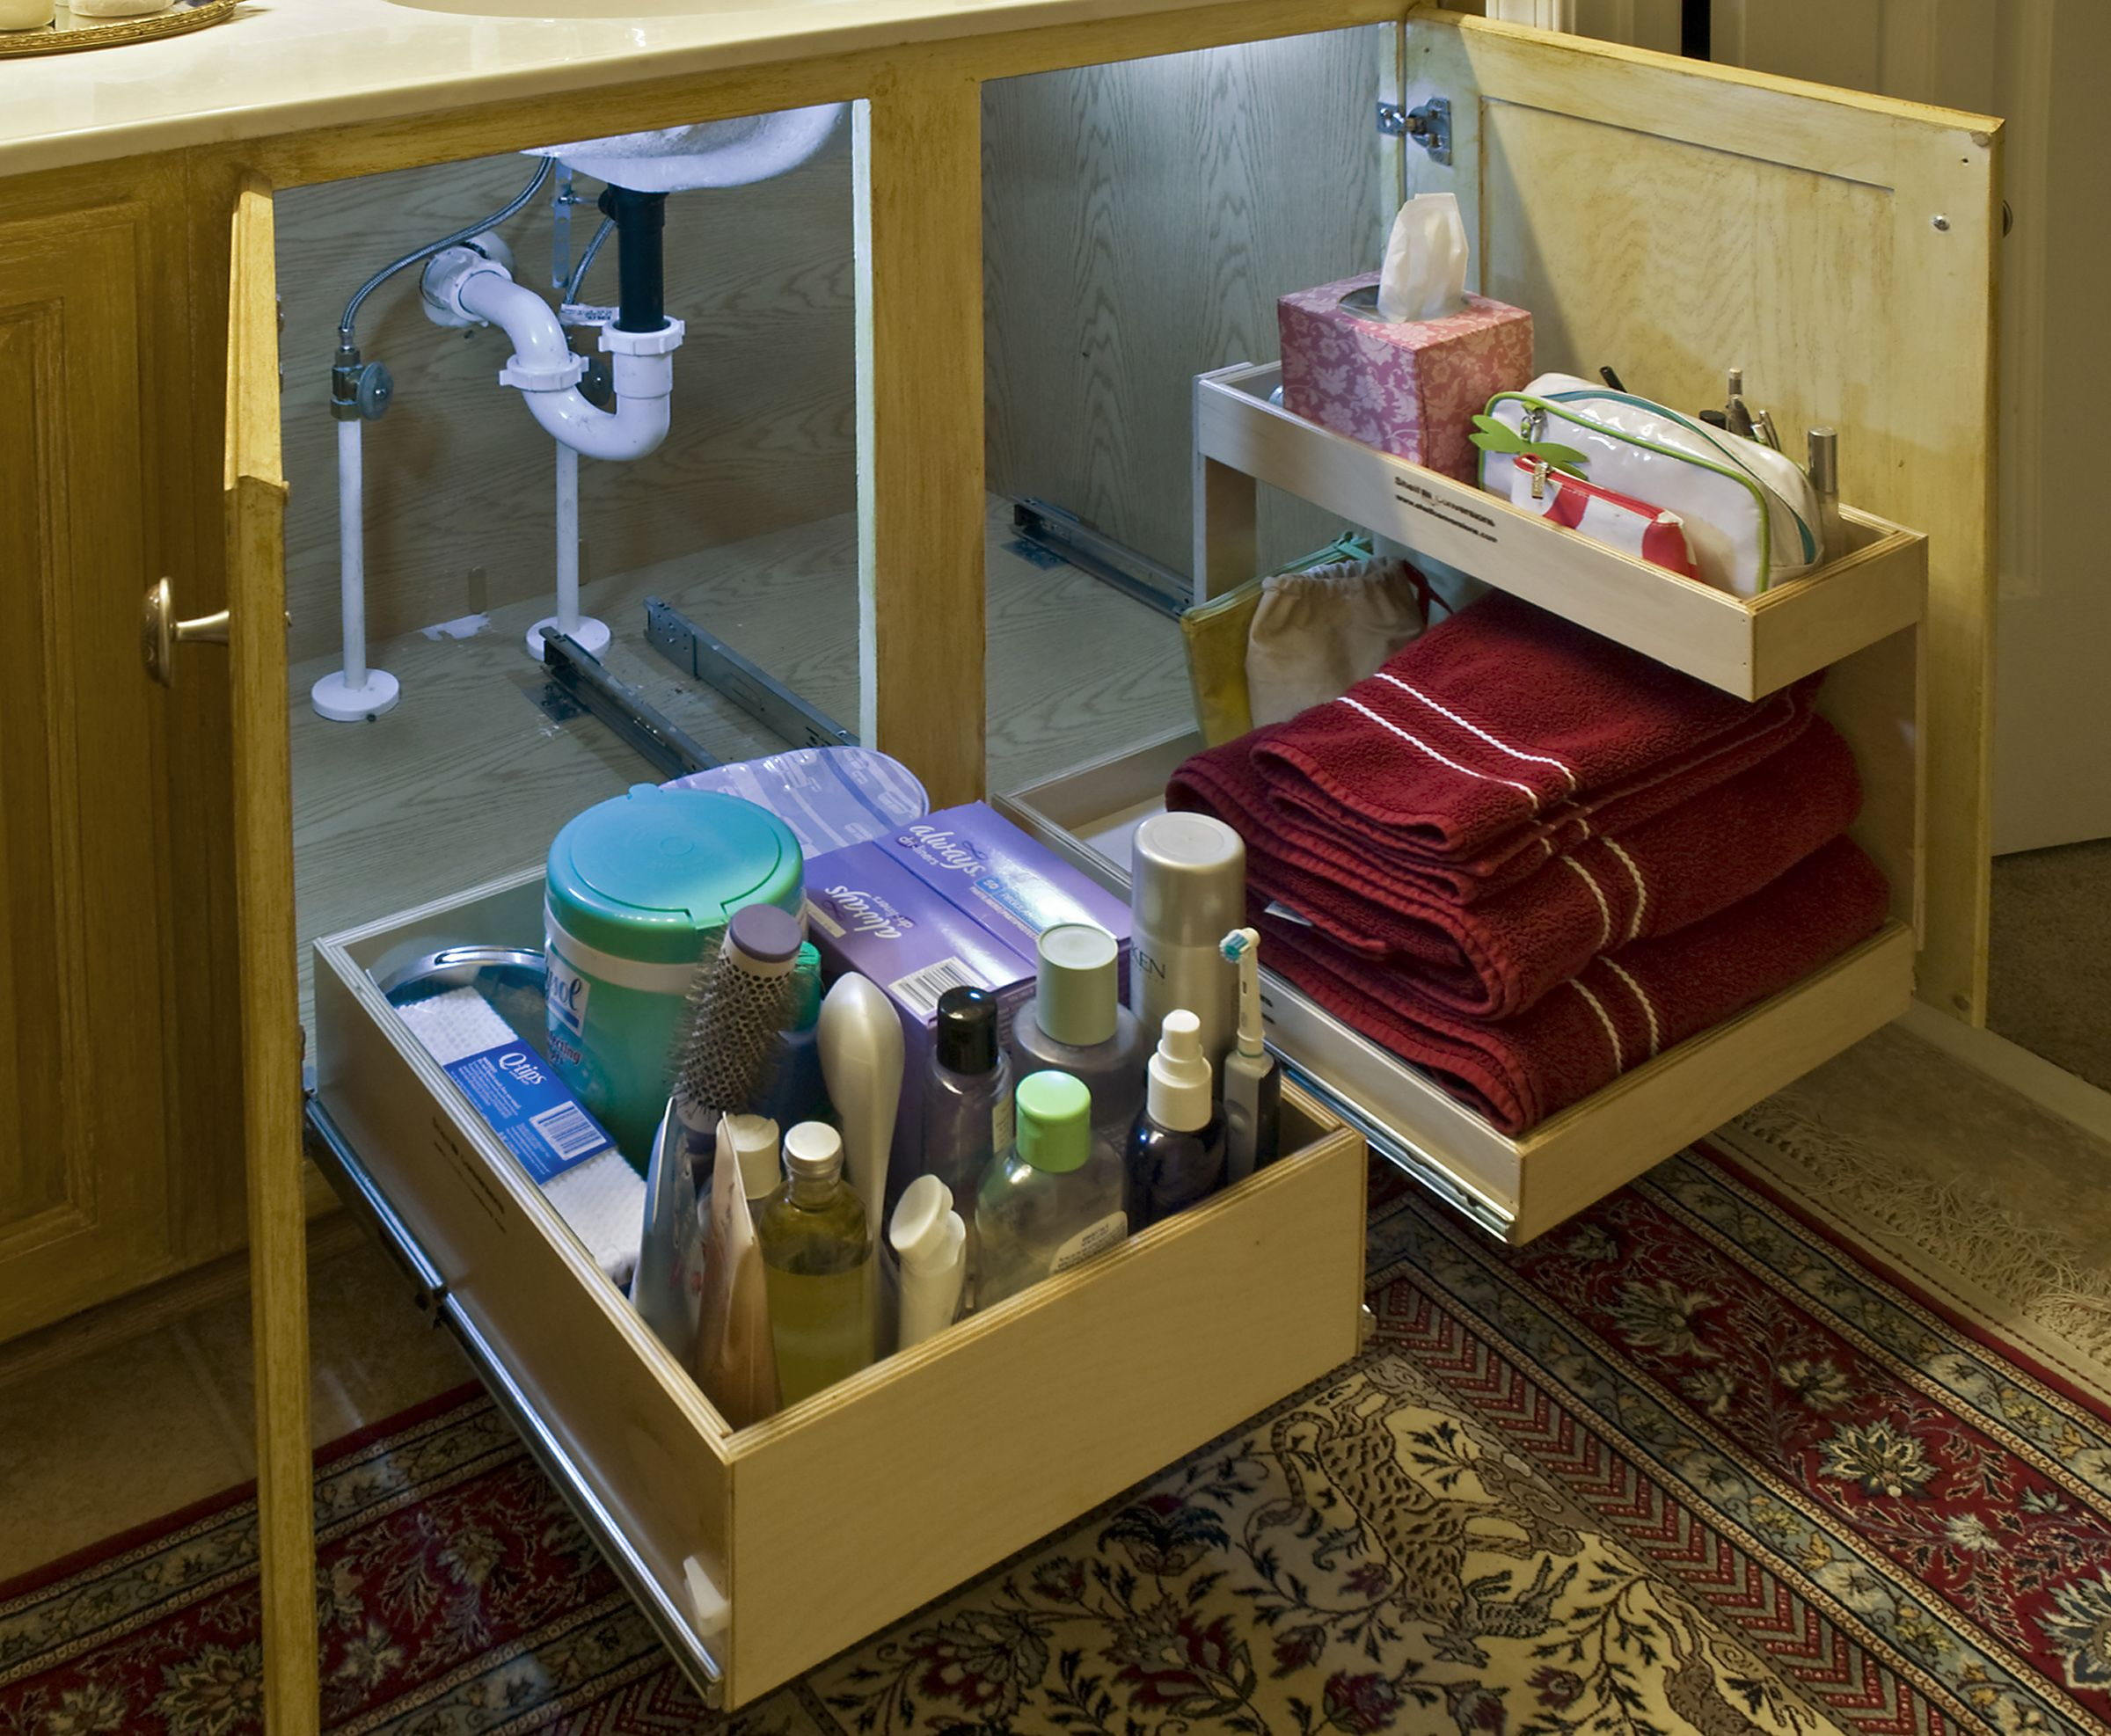 Kitchen Sink Storage Solutions Under Your Sinks with Slide